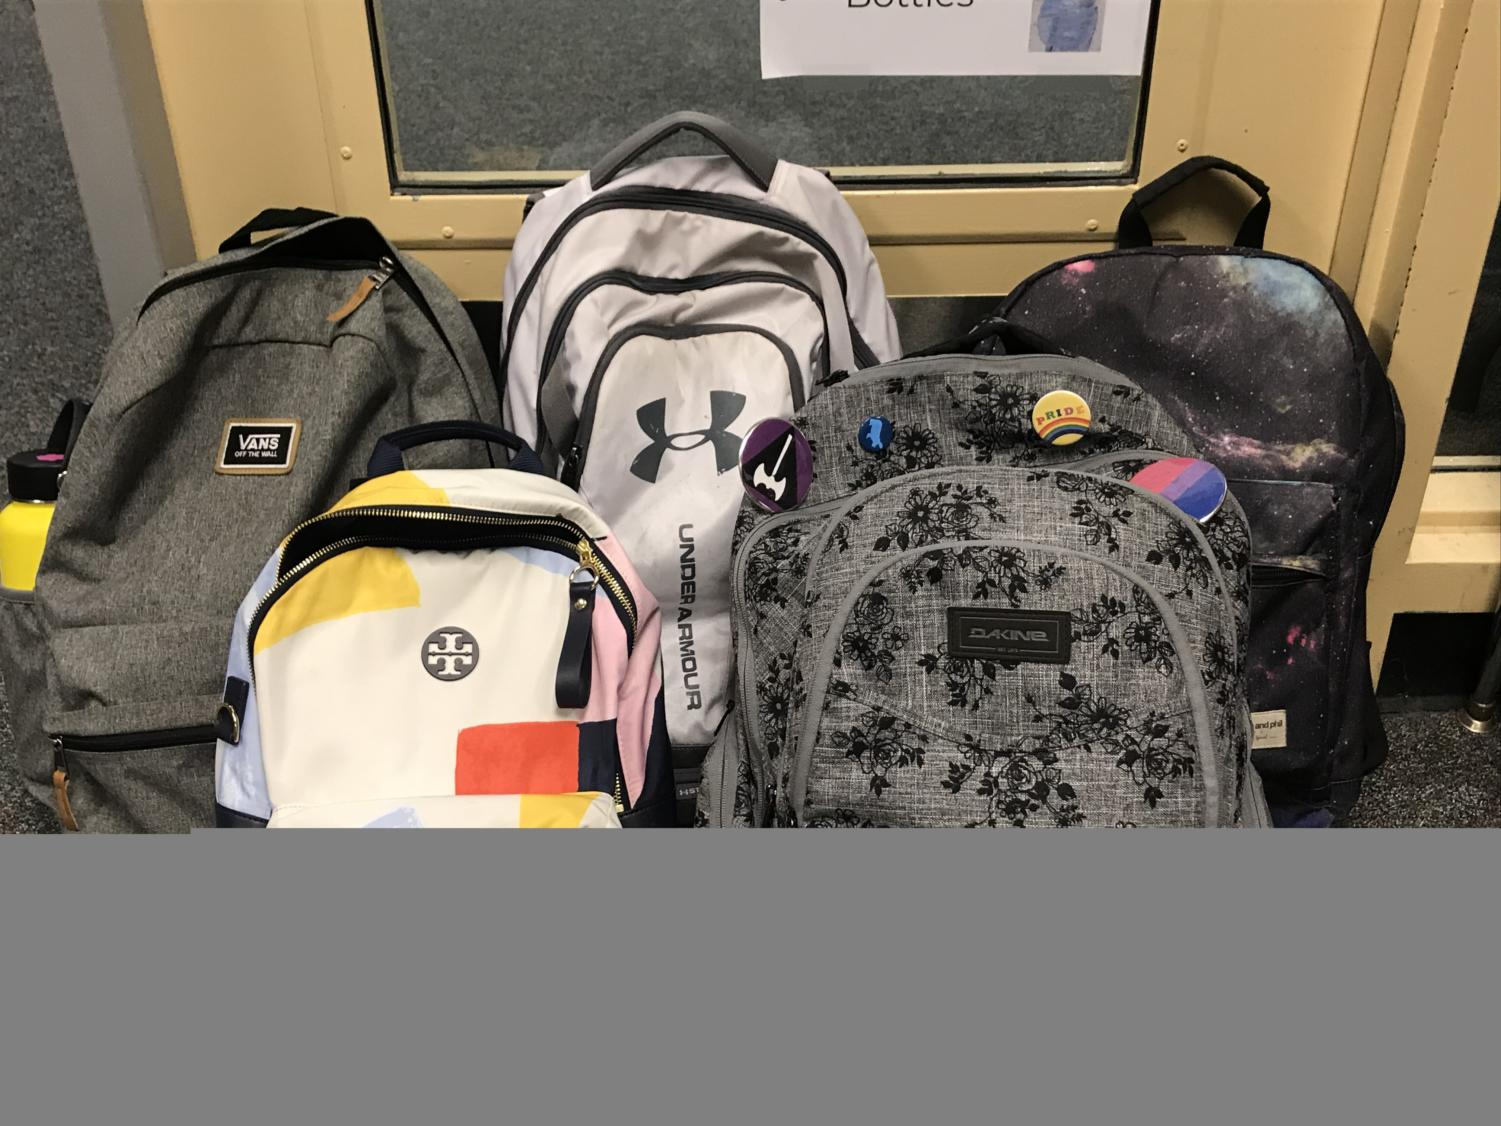 Some of the backpacks that were weighed.